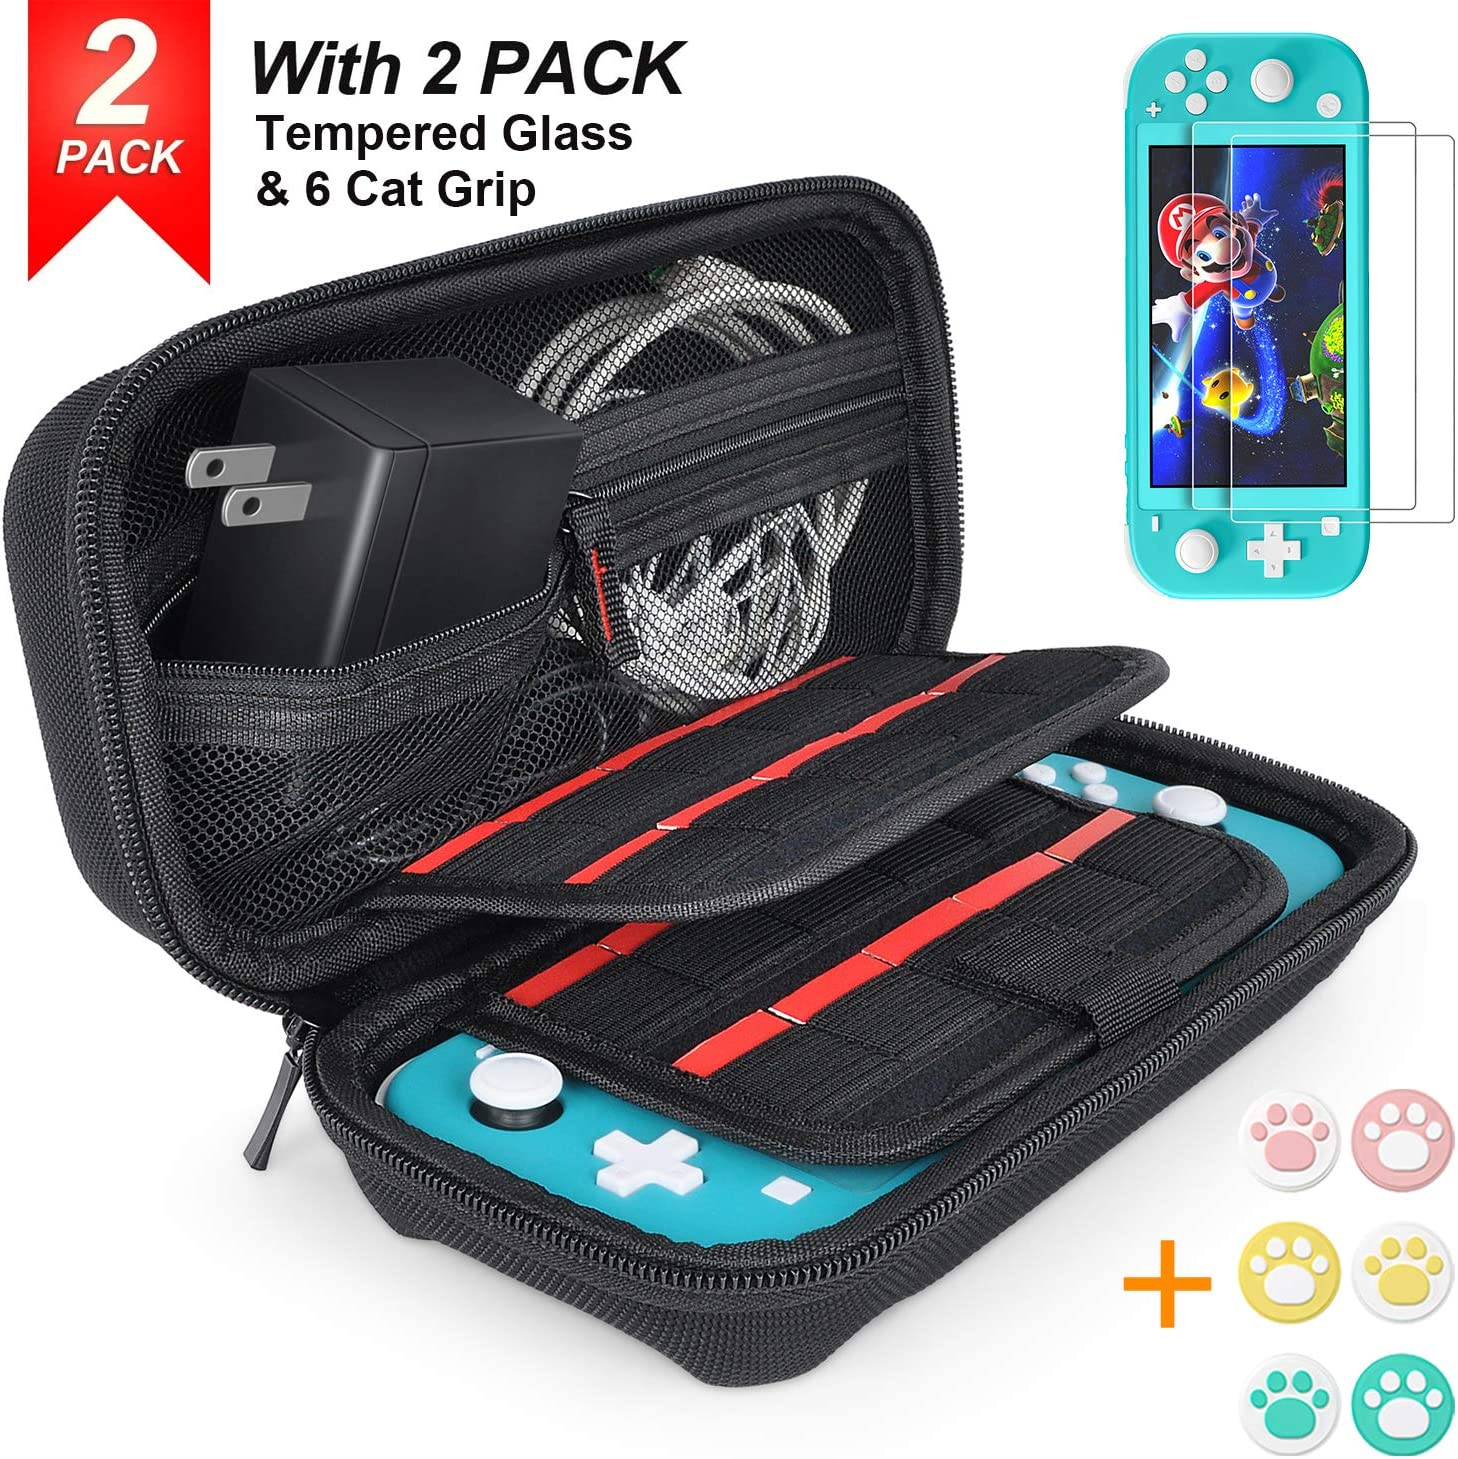 Hestia Goods for Nintendo Switch Lite Case with 2 Pack Screen Protector & 6 Pcs Thumb Grip, 20 Game Cartridges Hard Shell Travel Carrying Switch Lite Pouch Case Console & Accessories, Black